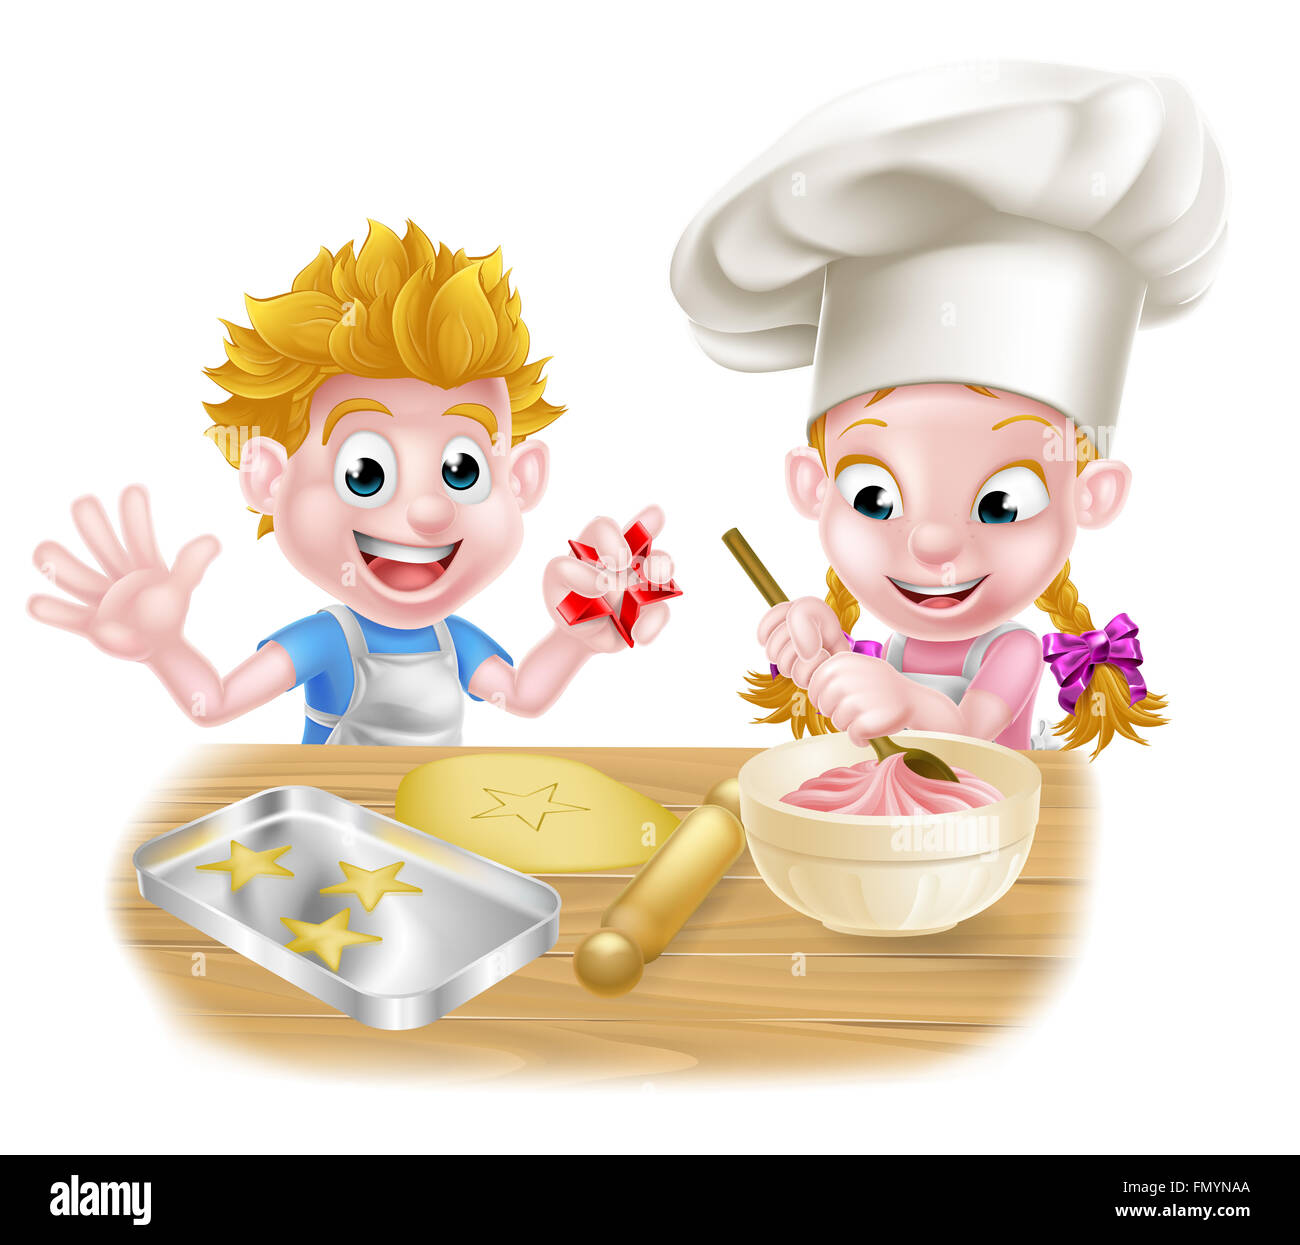 Cartoon Chef Kids Baking And Cooking Desserts In The Kitchen Stock Photo Alamy